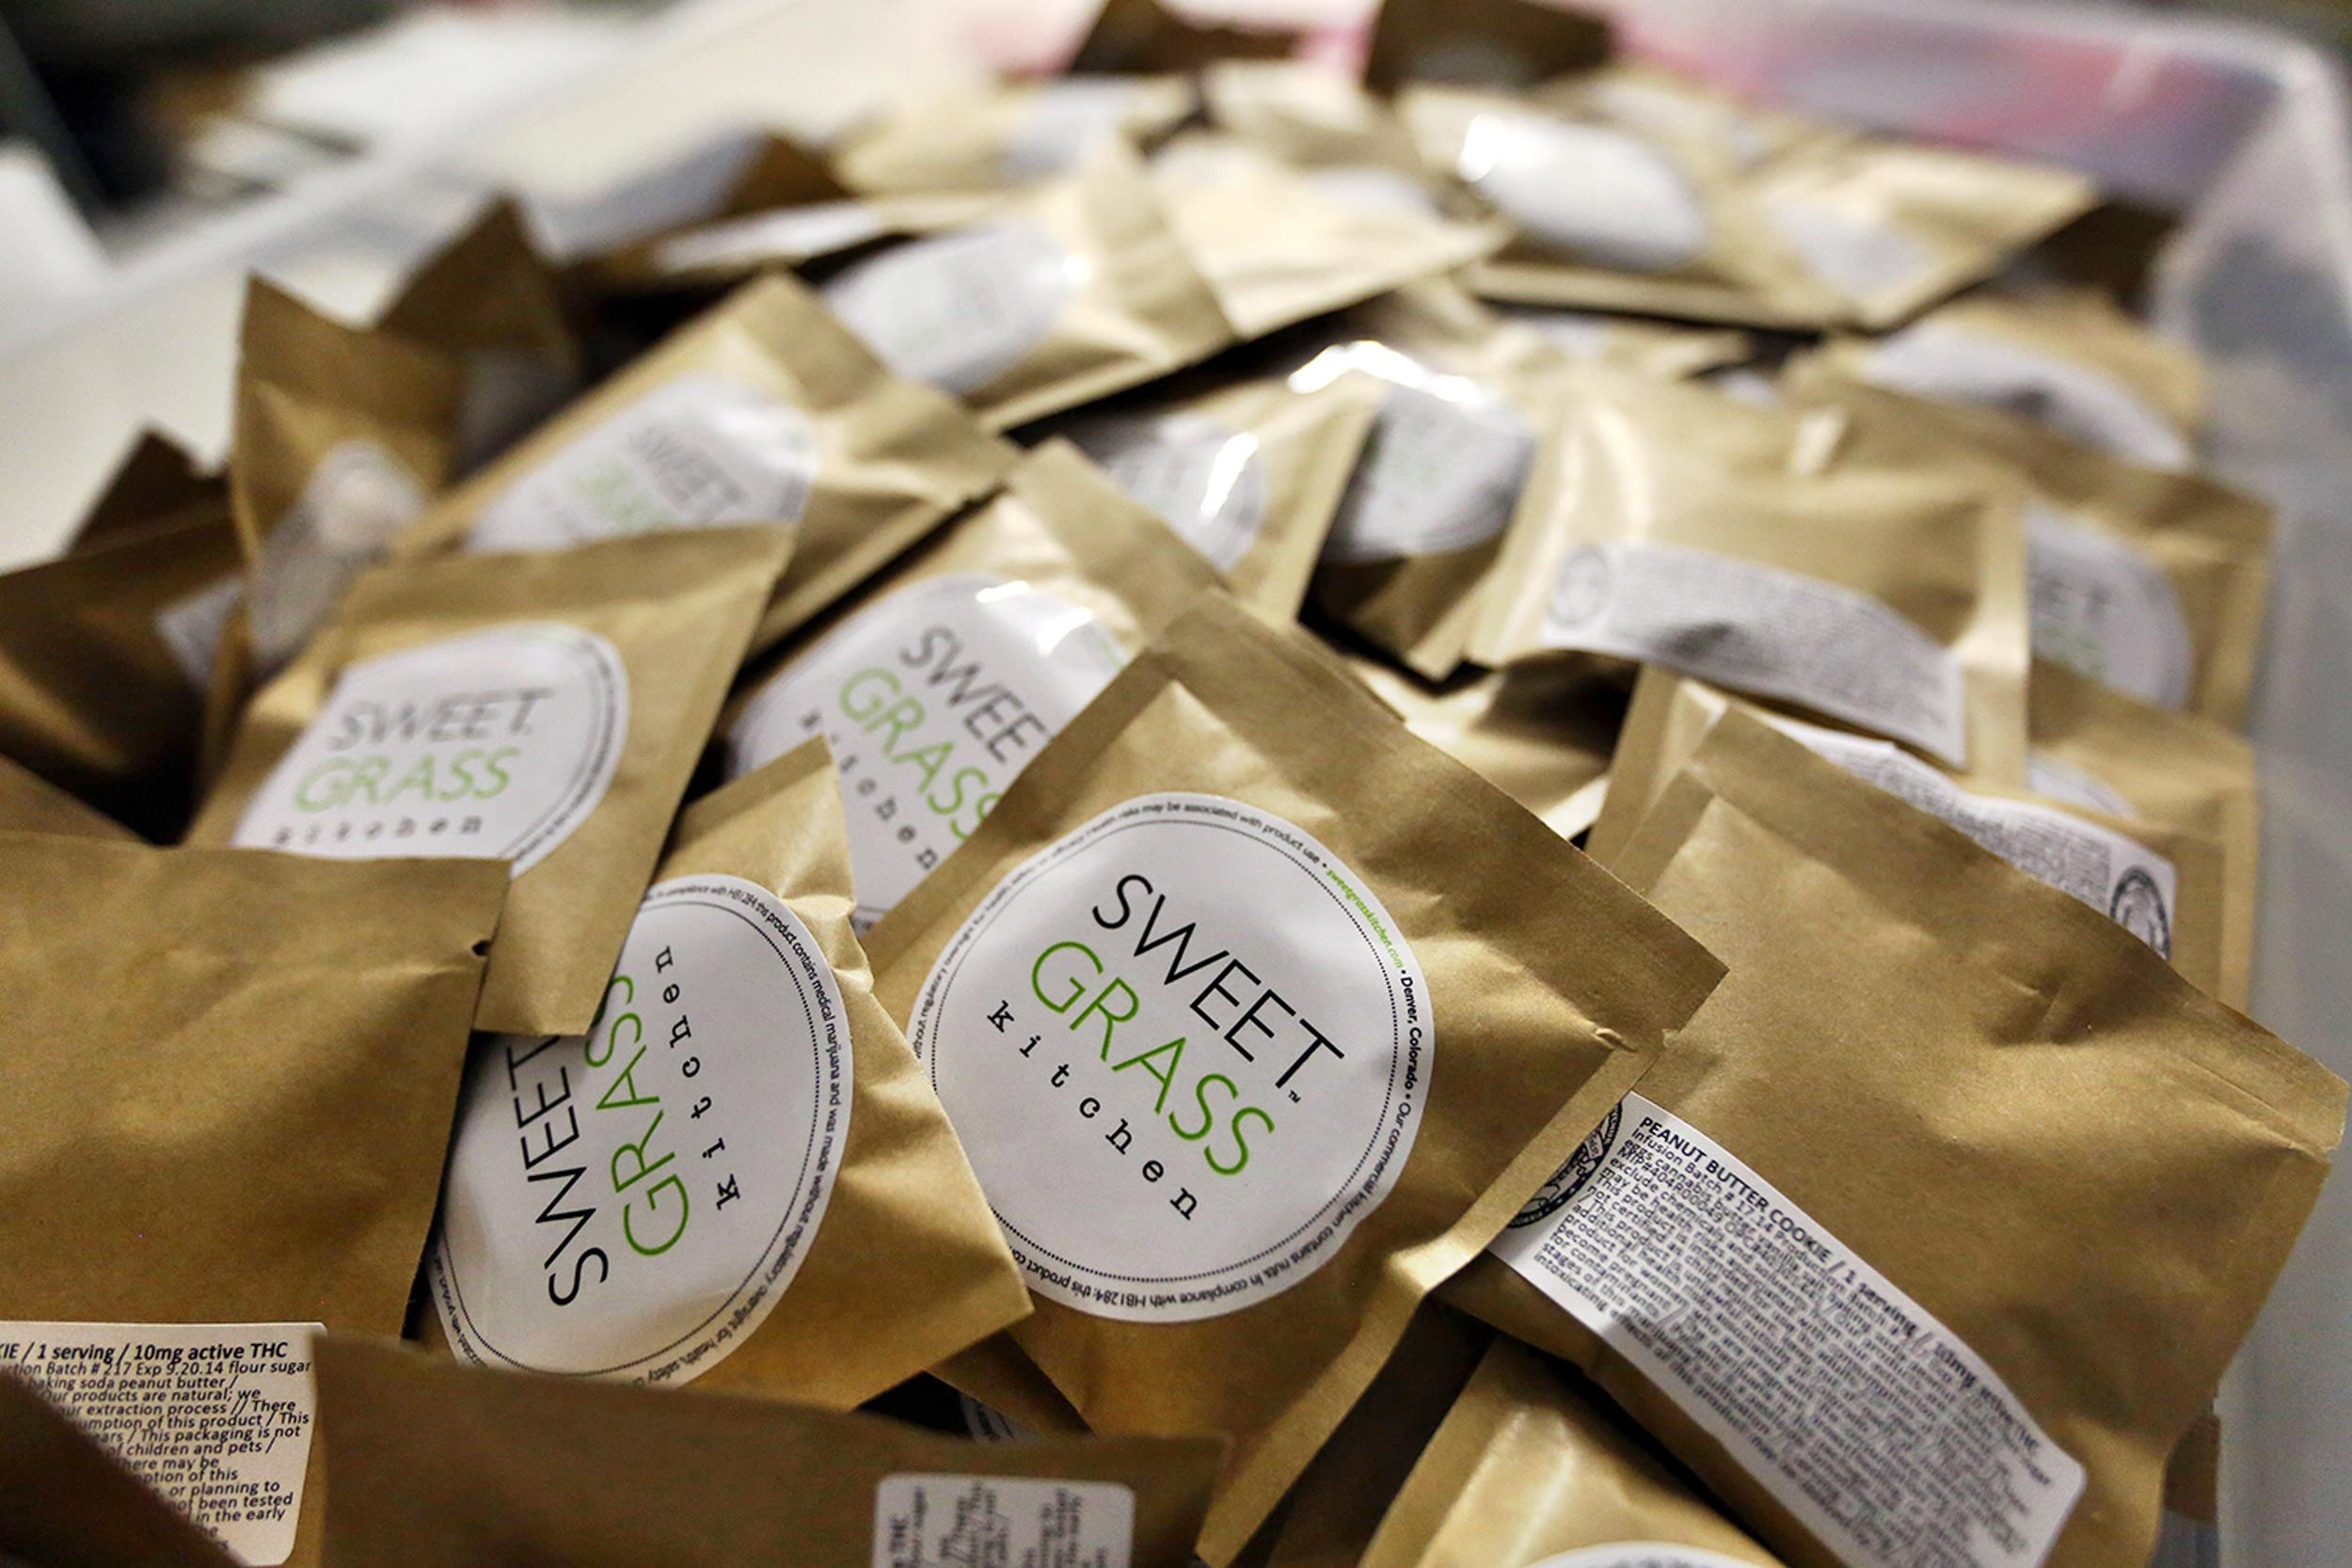 Image: Freshly packaged cannabis-infused peanut butter cookies are prepared for casing